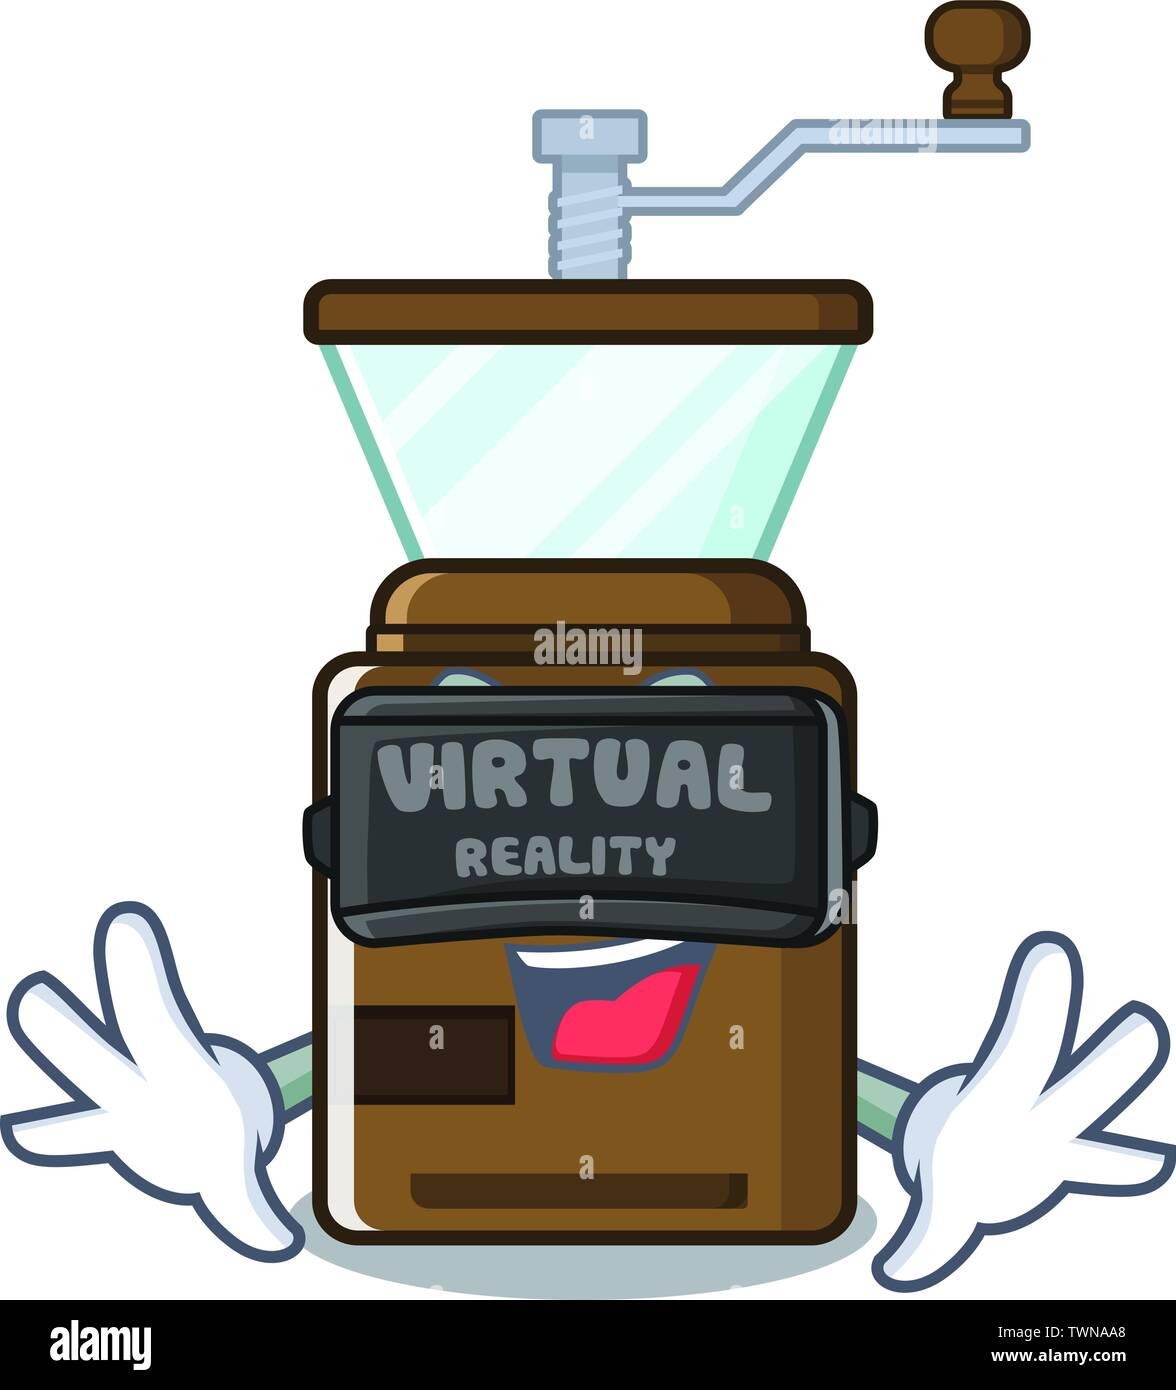 Virtual reality cartoon coffee grinder above wooden table - Stock Image